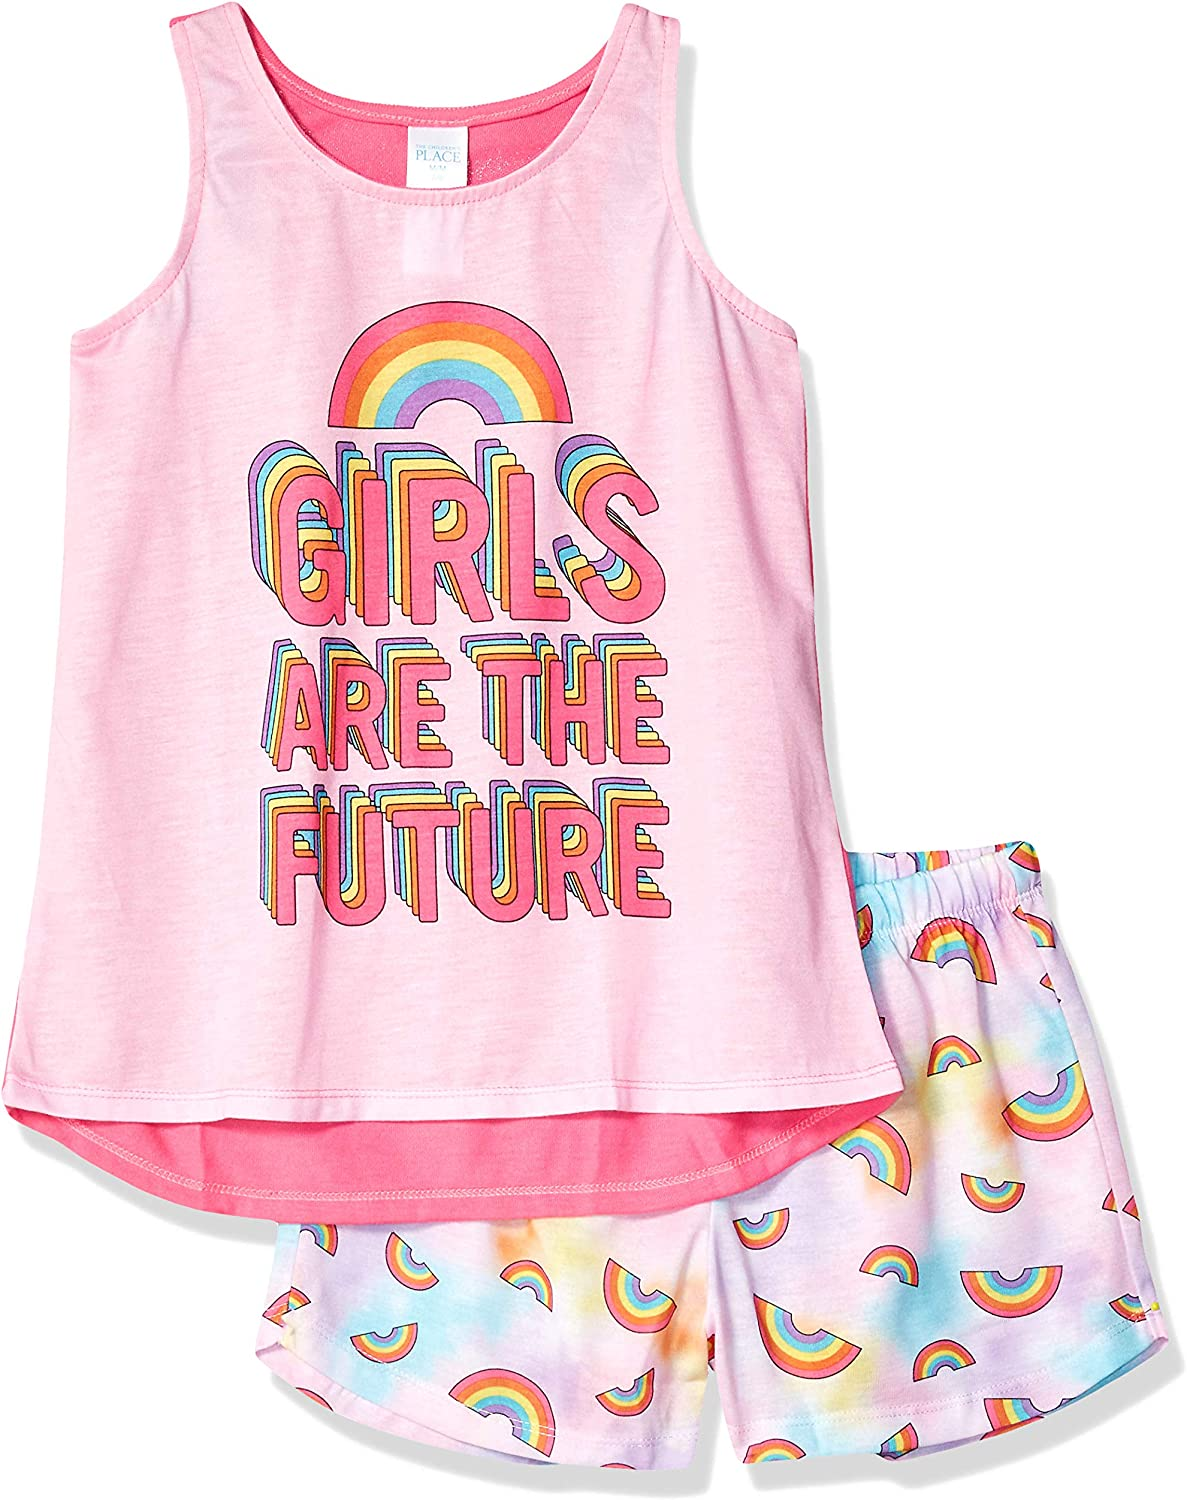 The Childrens Place Baby Girls Printed Casual Shorts